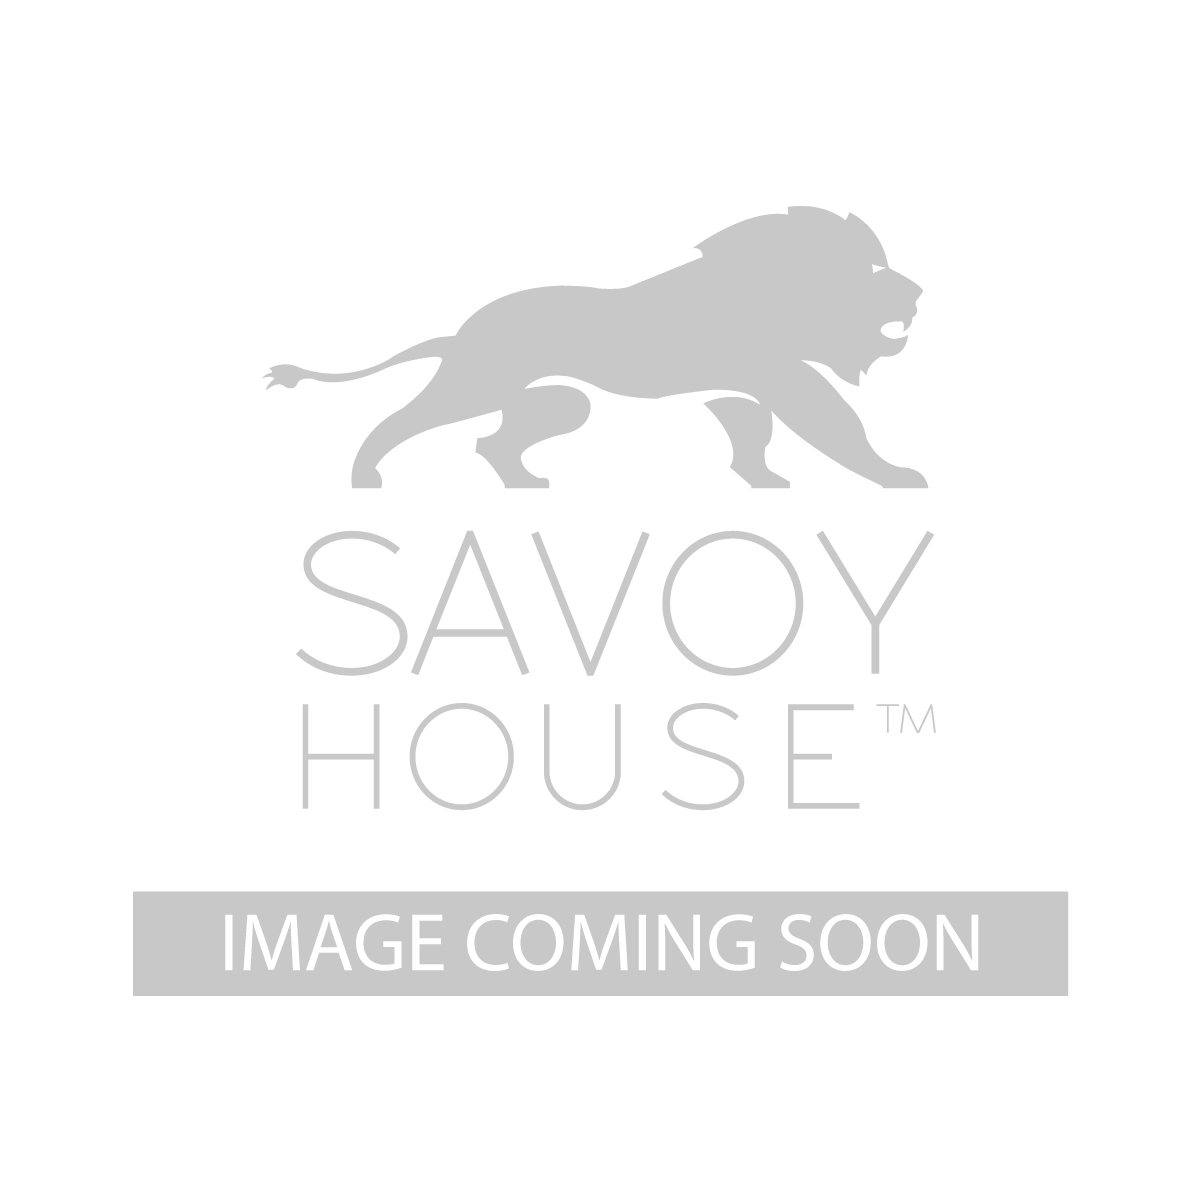 1 1555 9 122 Forum 9 Light Chandelier By Savoy House